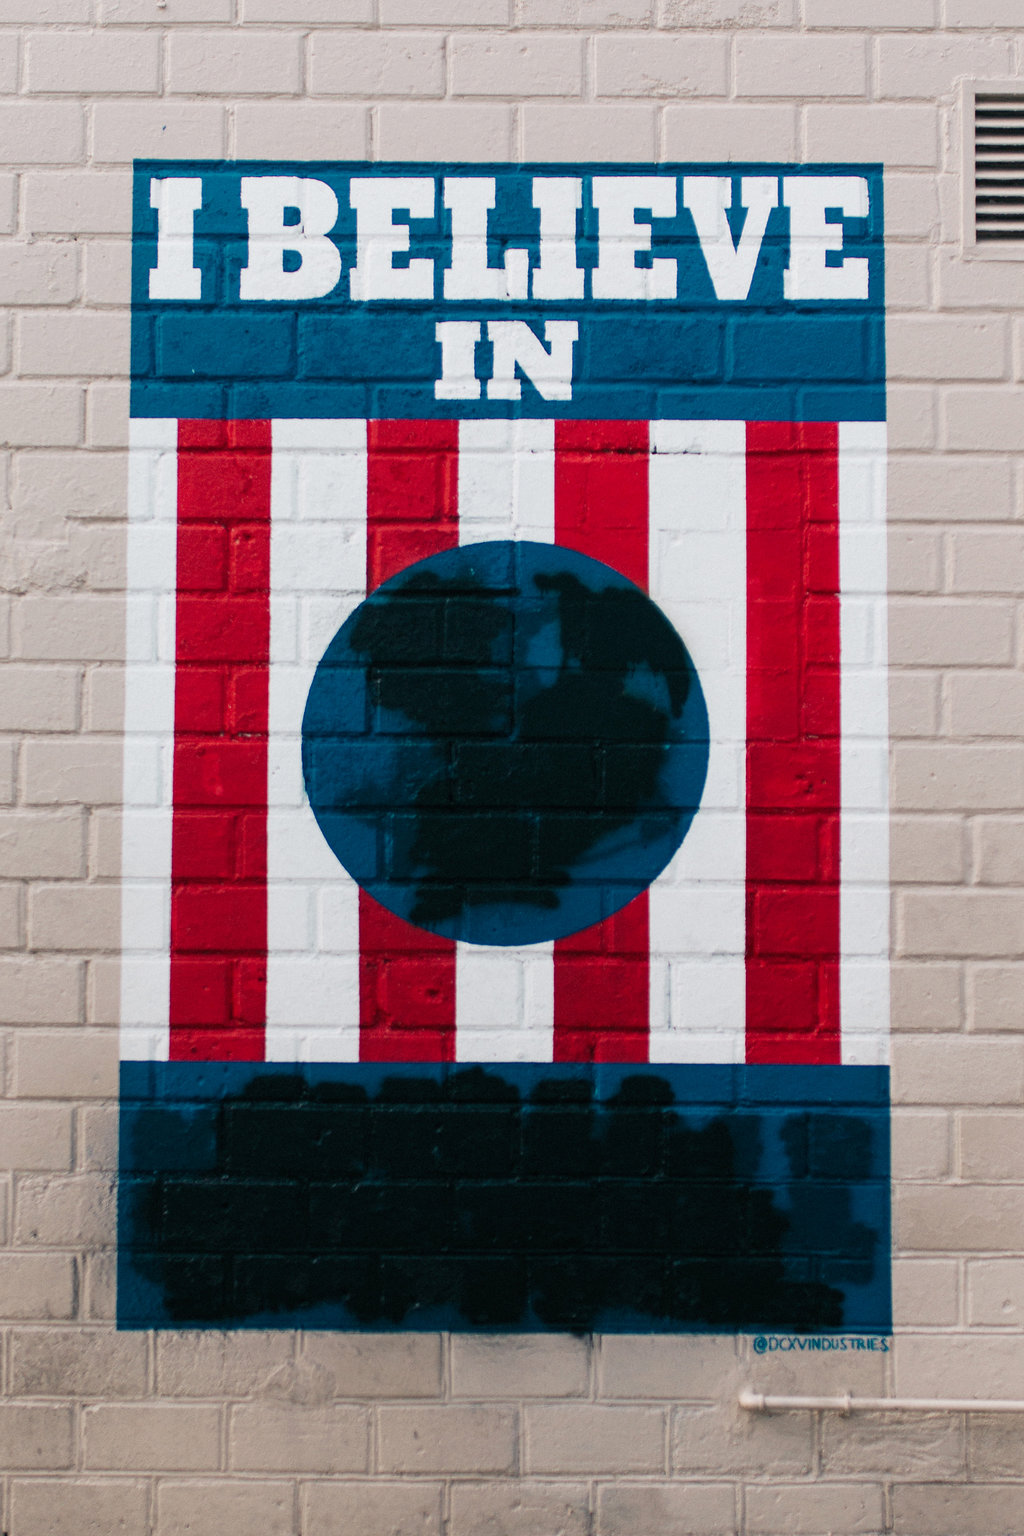 I-Believe-In-Nashville-Vandalized-12th-South-14